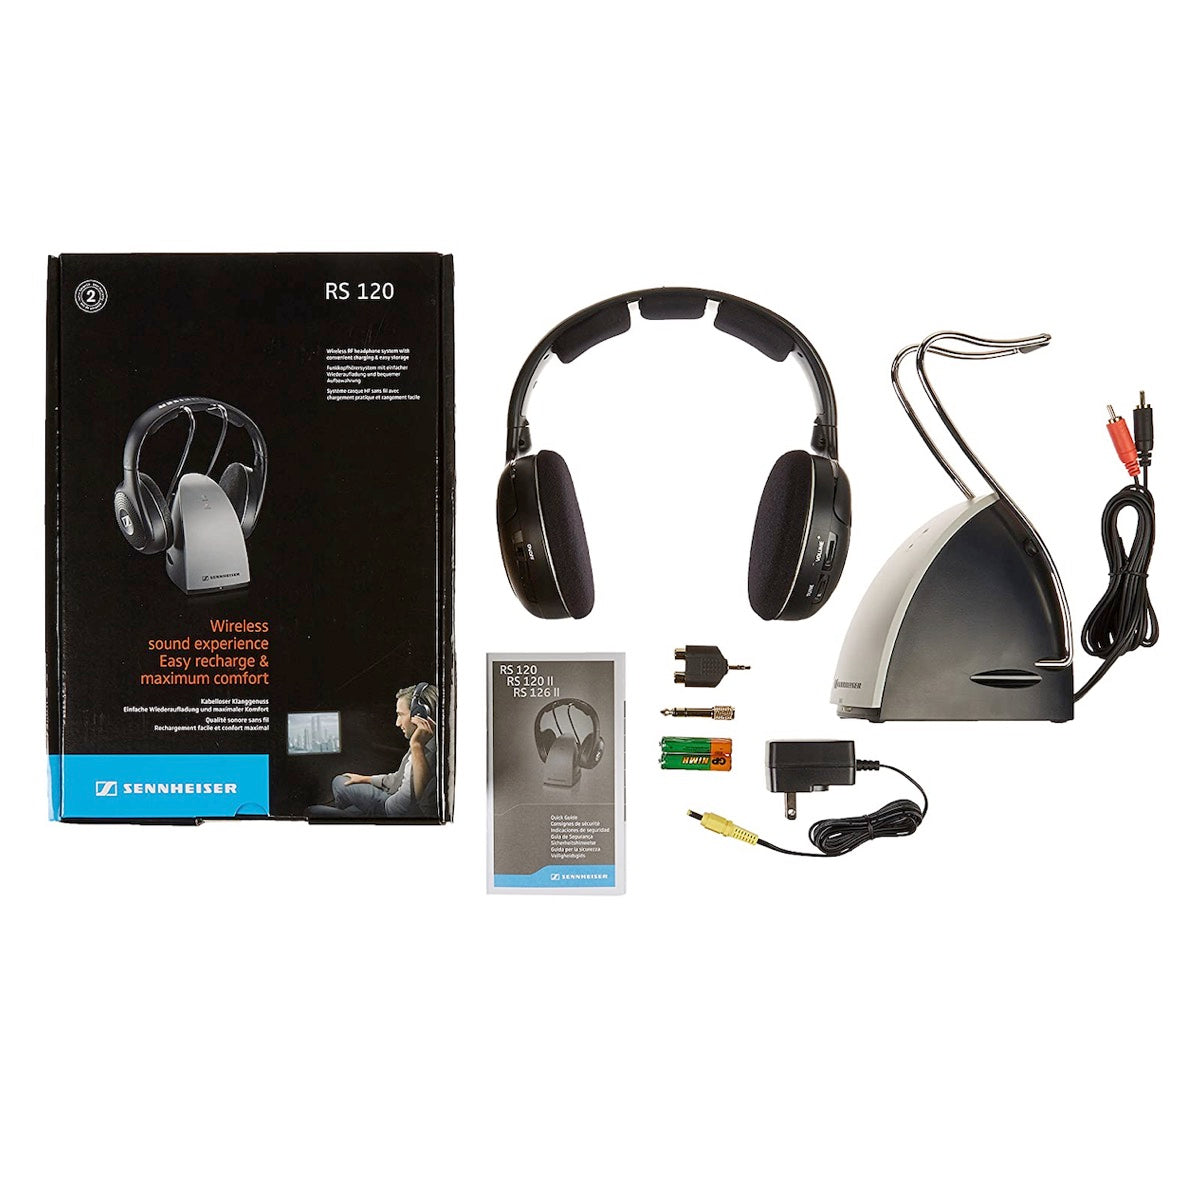 Sennheiser RS 120 II - RF Wireless Headphone, Sennheiser, Wireless Headphones - AVStore.in